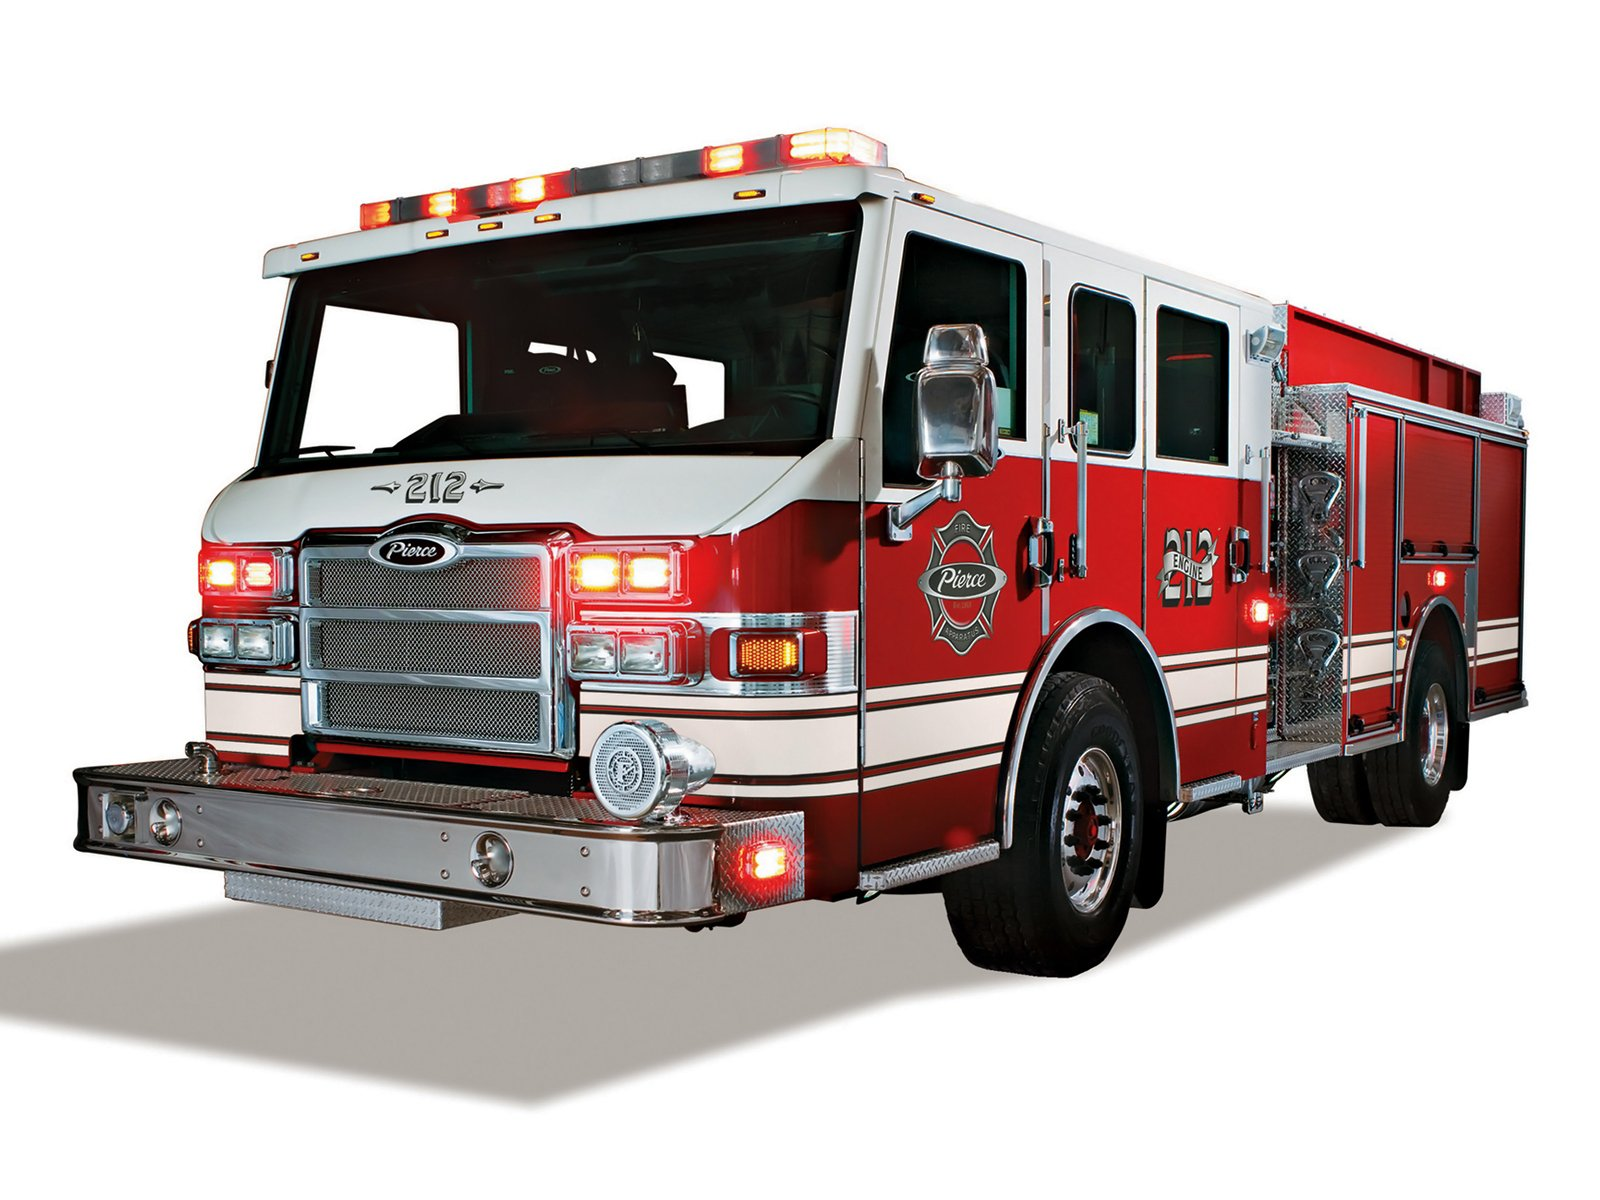 2010 Pierce PUC Pamper firetruck wallpaper 1600x1200 129902 1600x1200